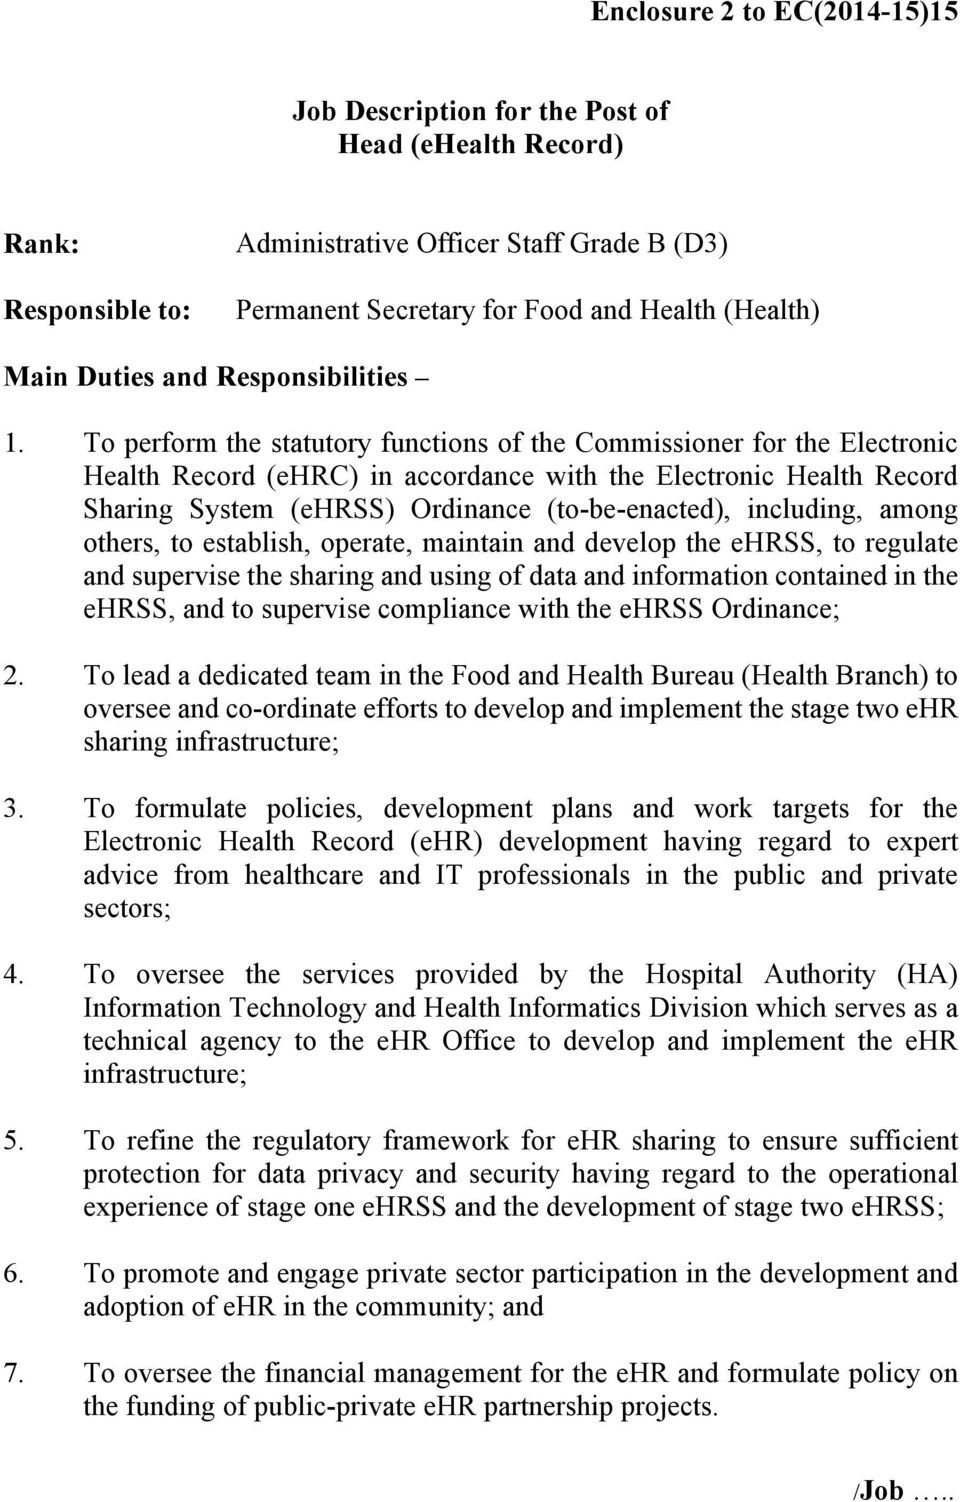 To perform the statutory functions of the Commissioner for the Electronic Health Record (ehrc) in accordance with the Electronic Health Record Sharing System (ehrss) Ordinance (to-be-enacted),